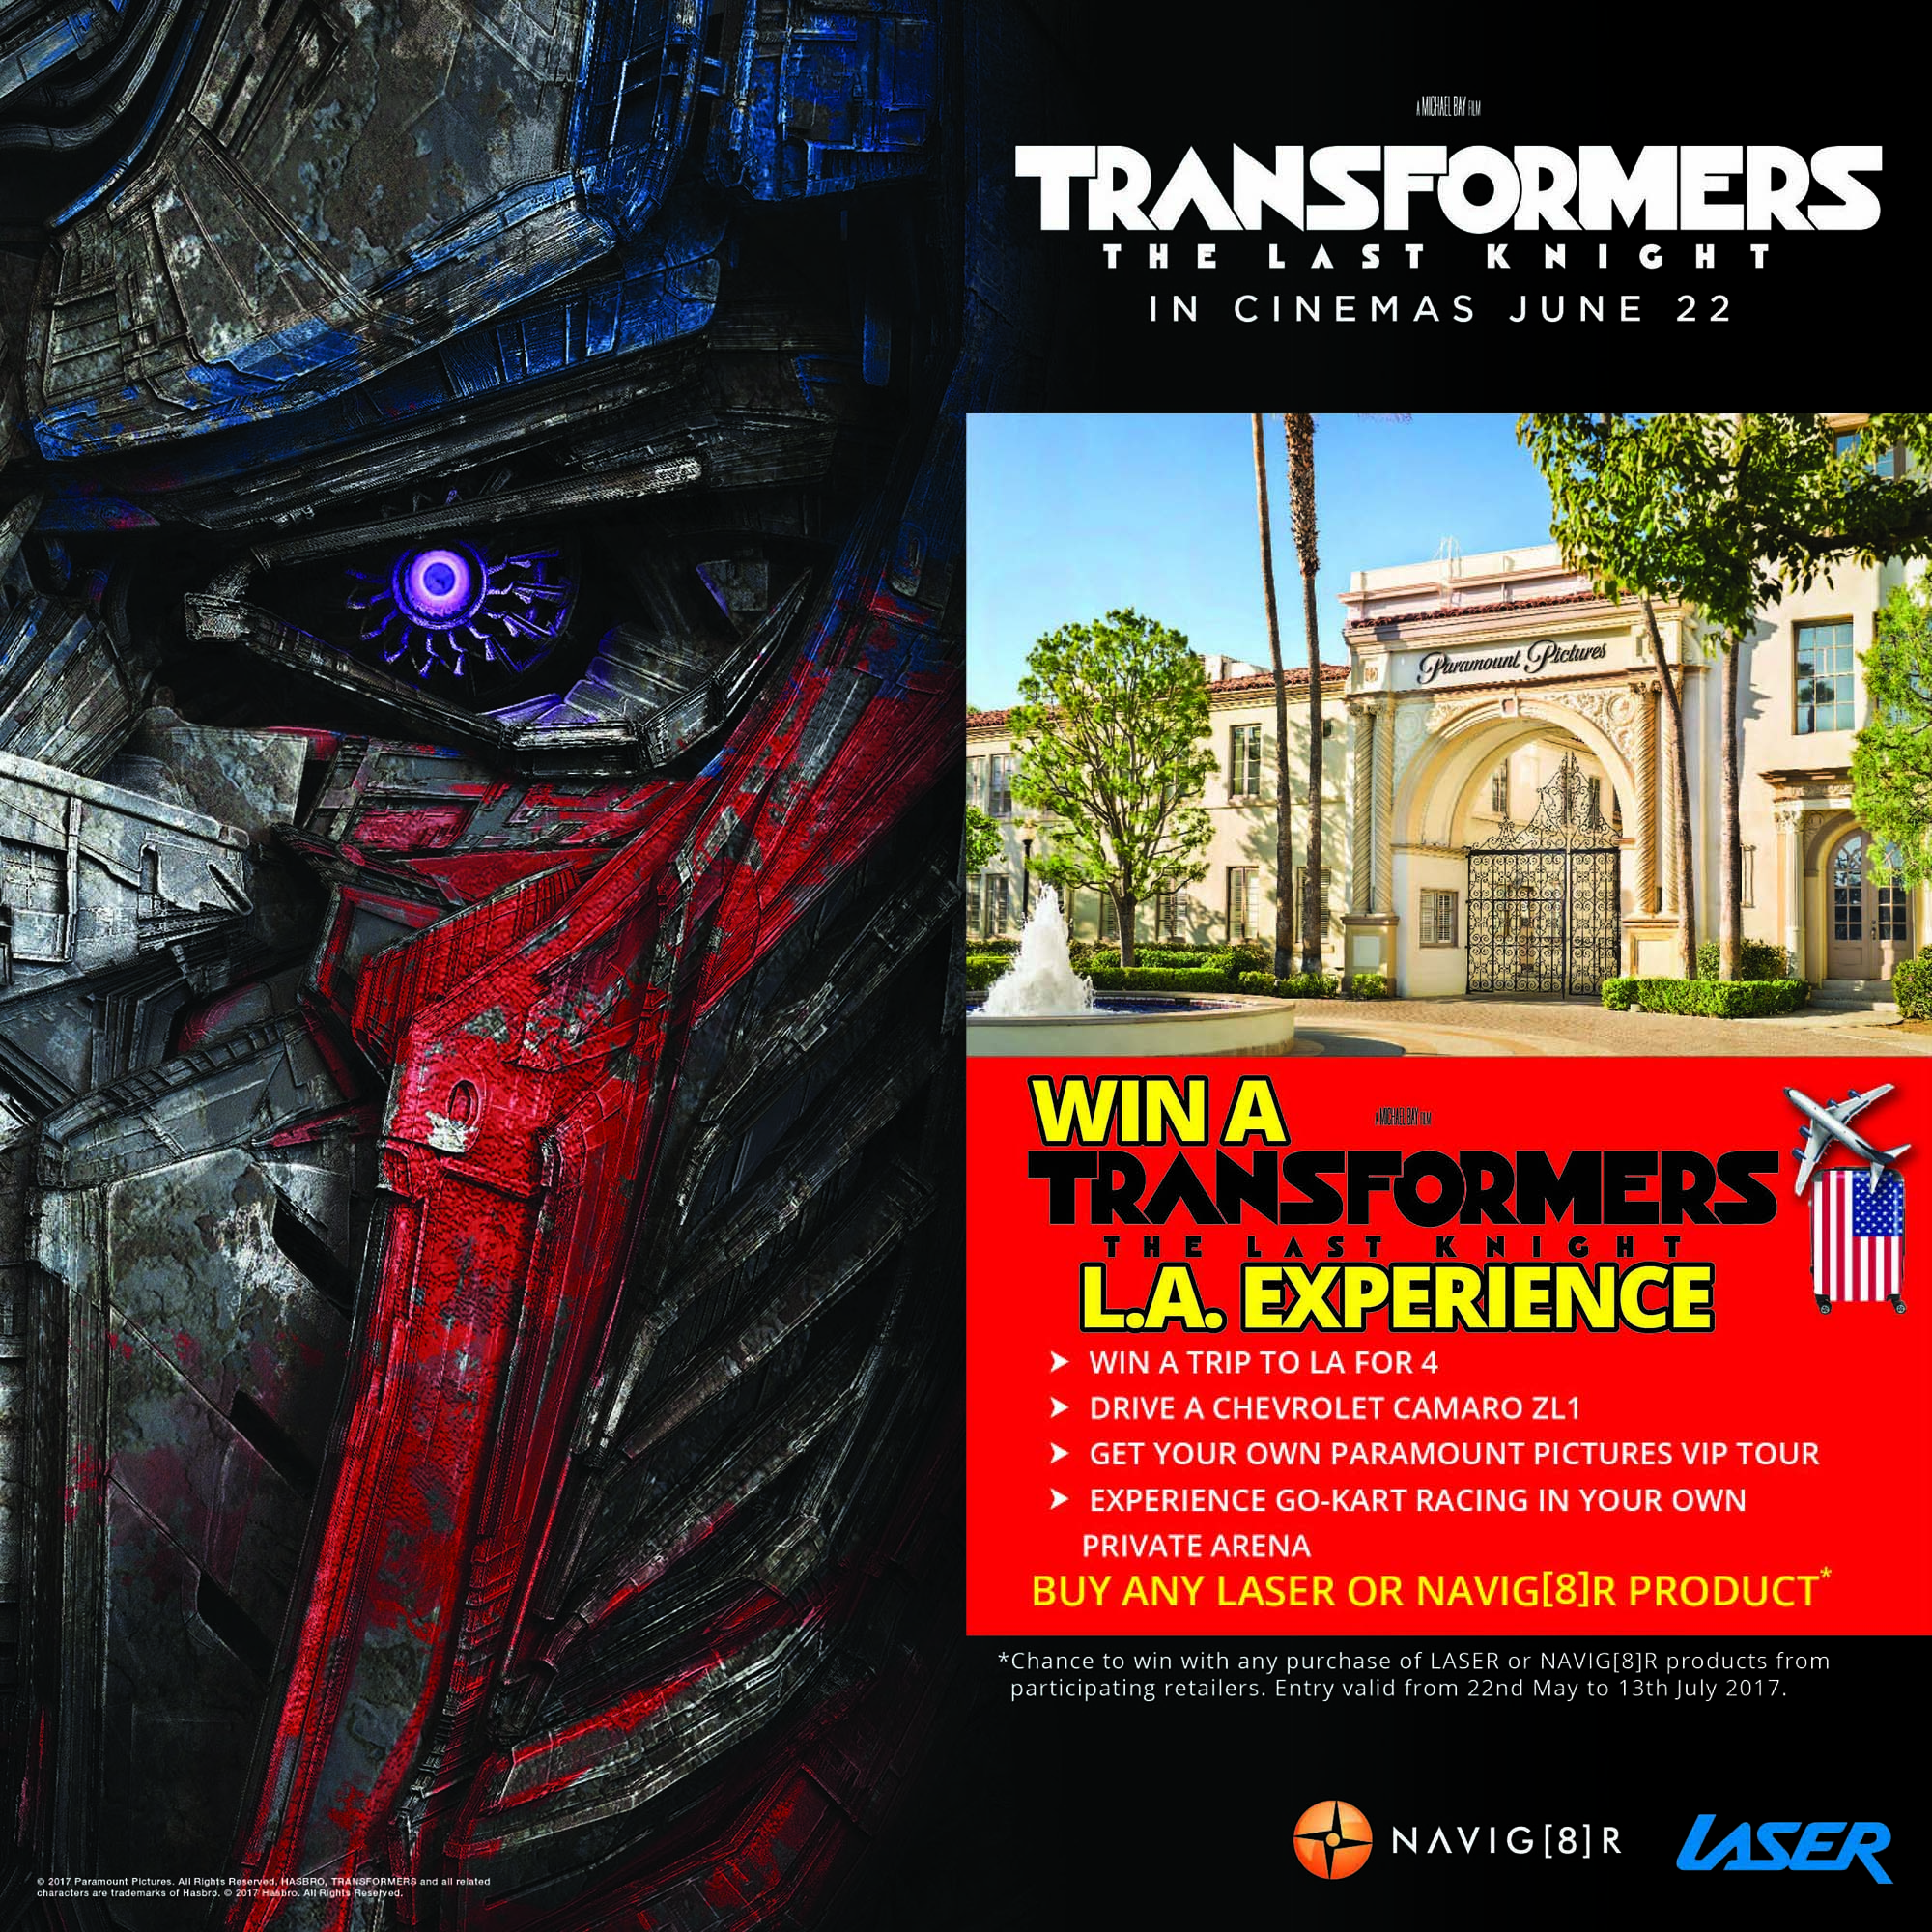 Laser Transformers Competition Laser Premieres Transformers Promotion